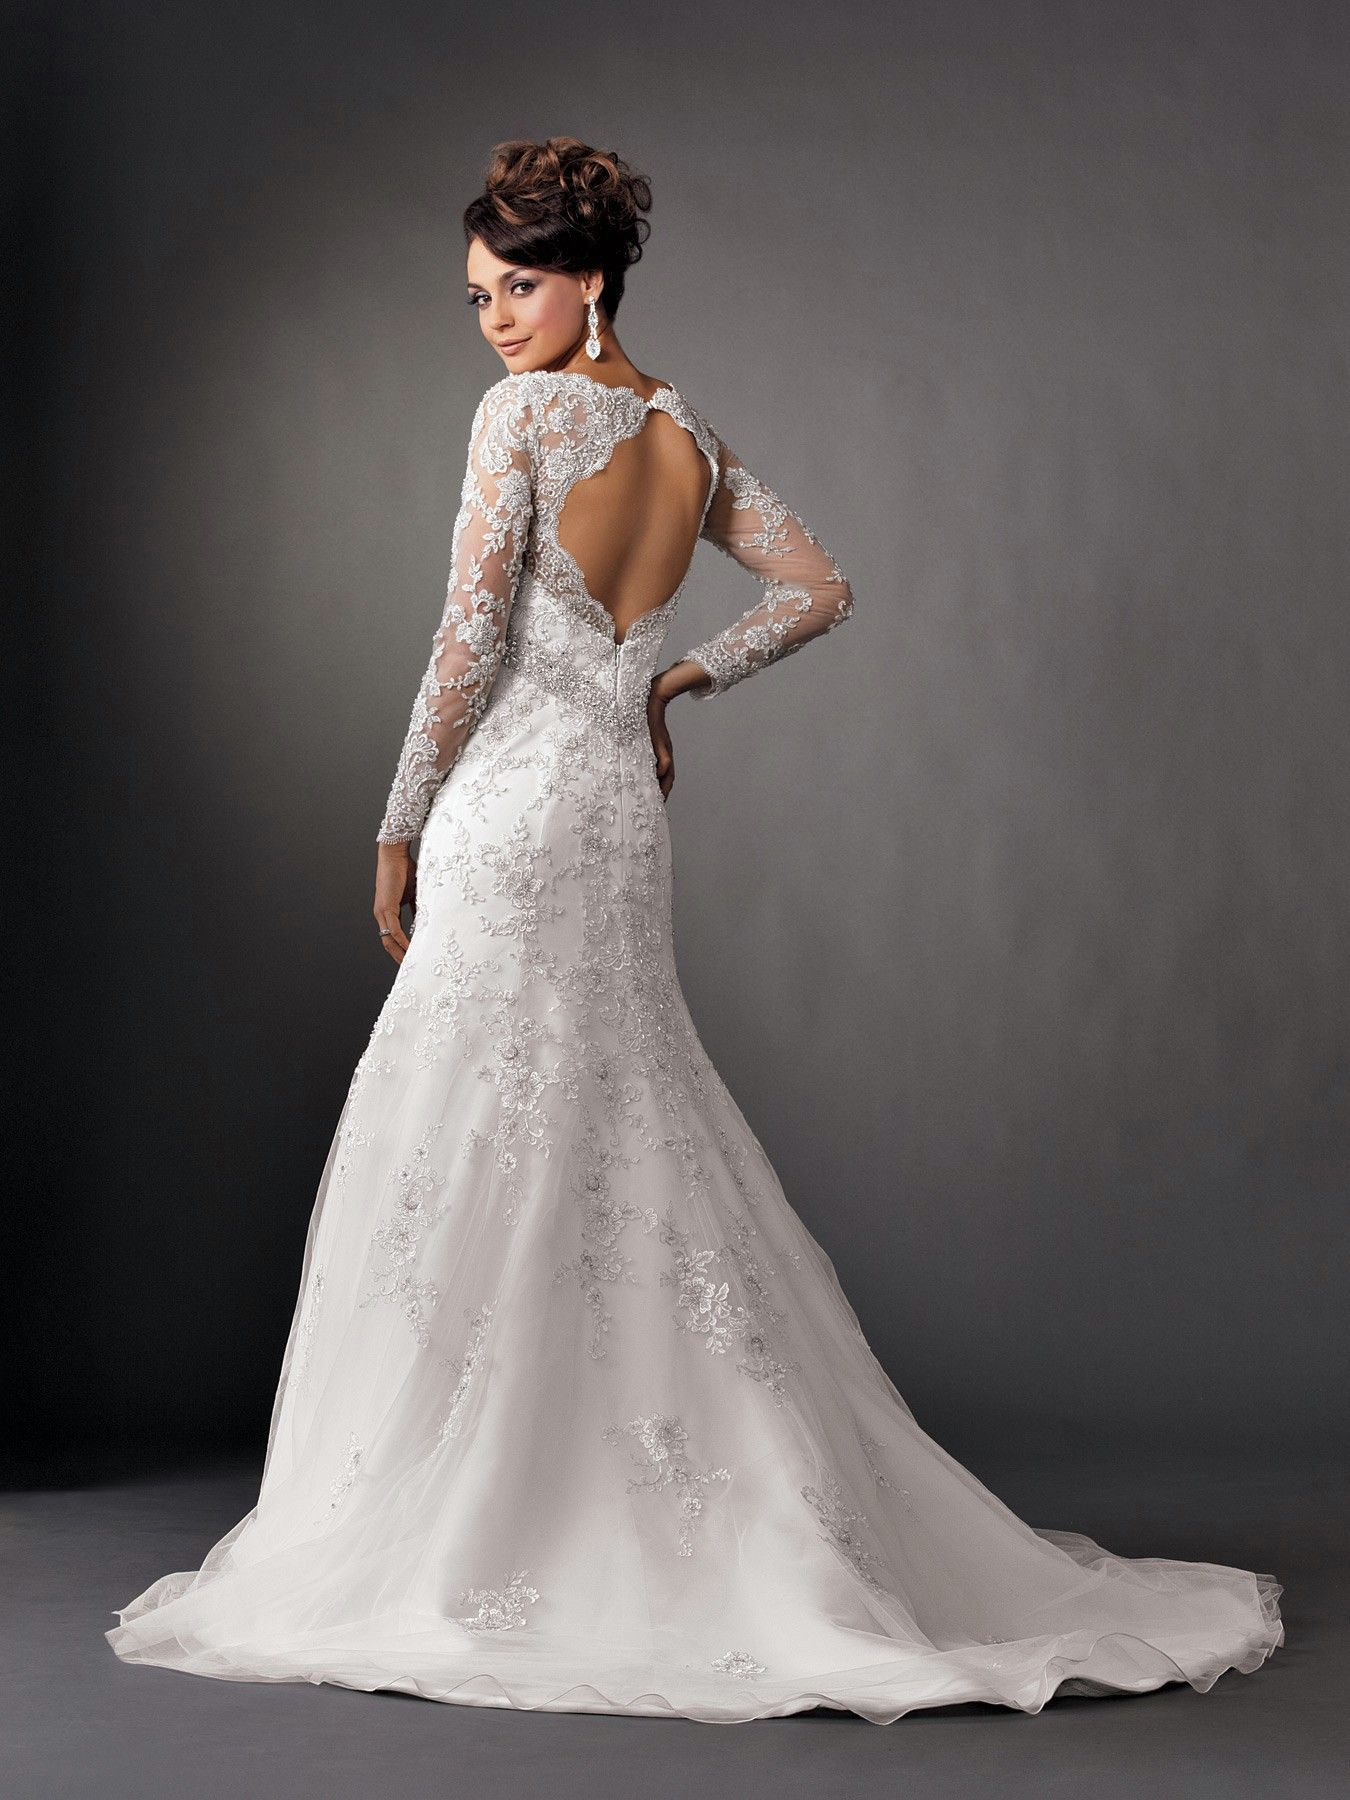 35 Wedding Gowns With Sleeves | Mermaid wedding gowns, Wedding and ...